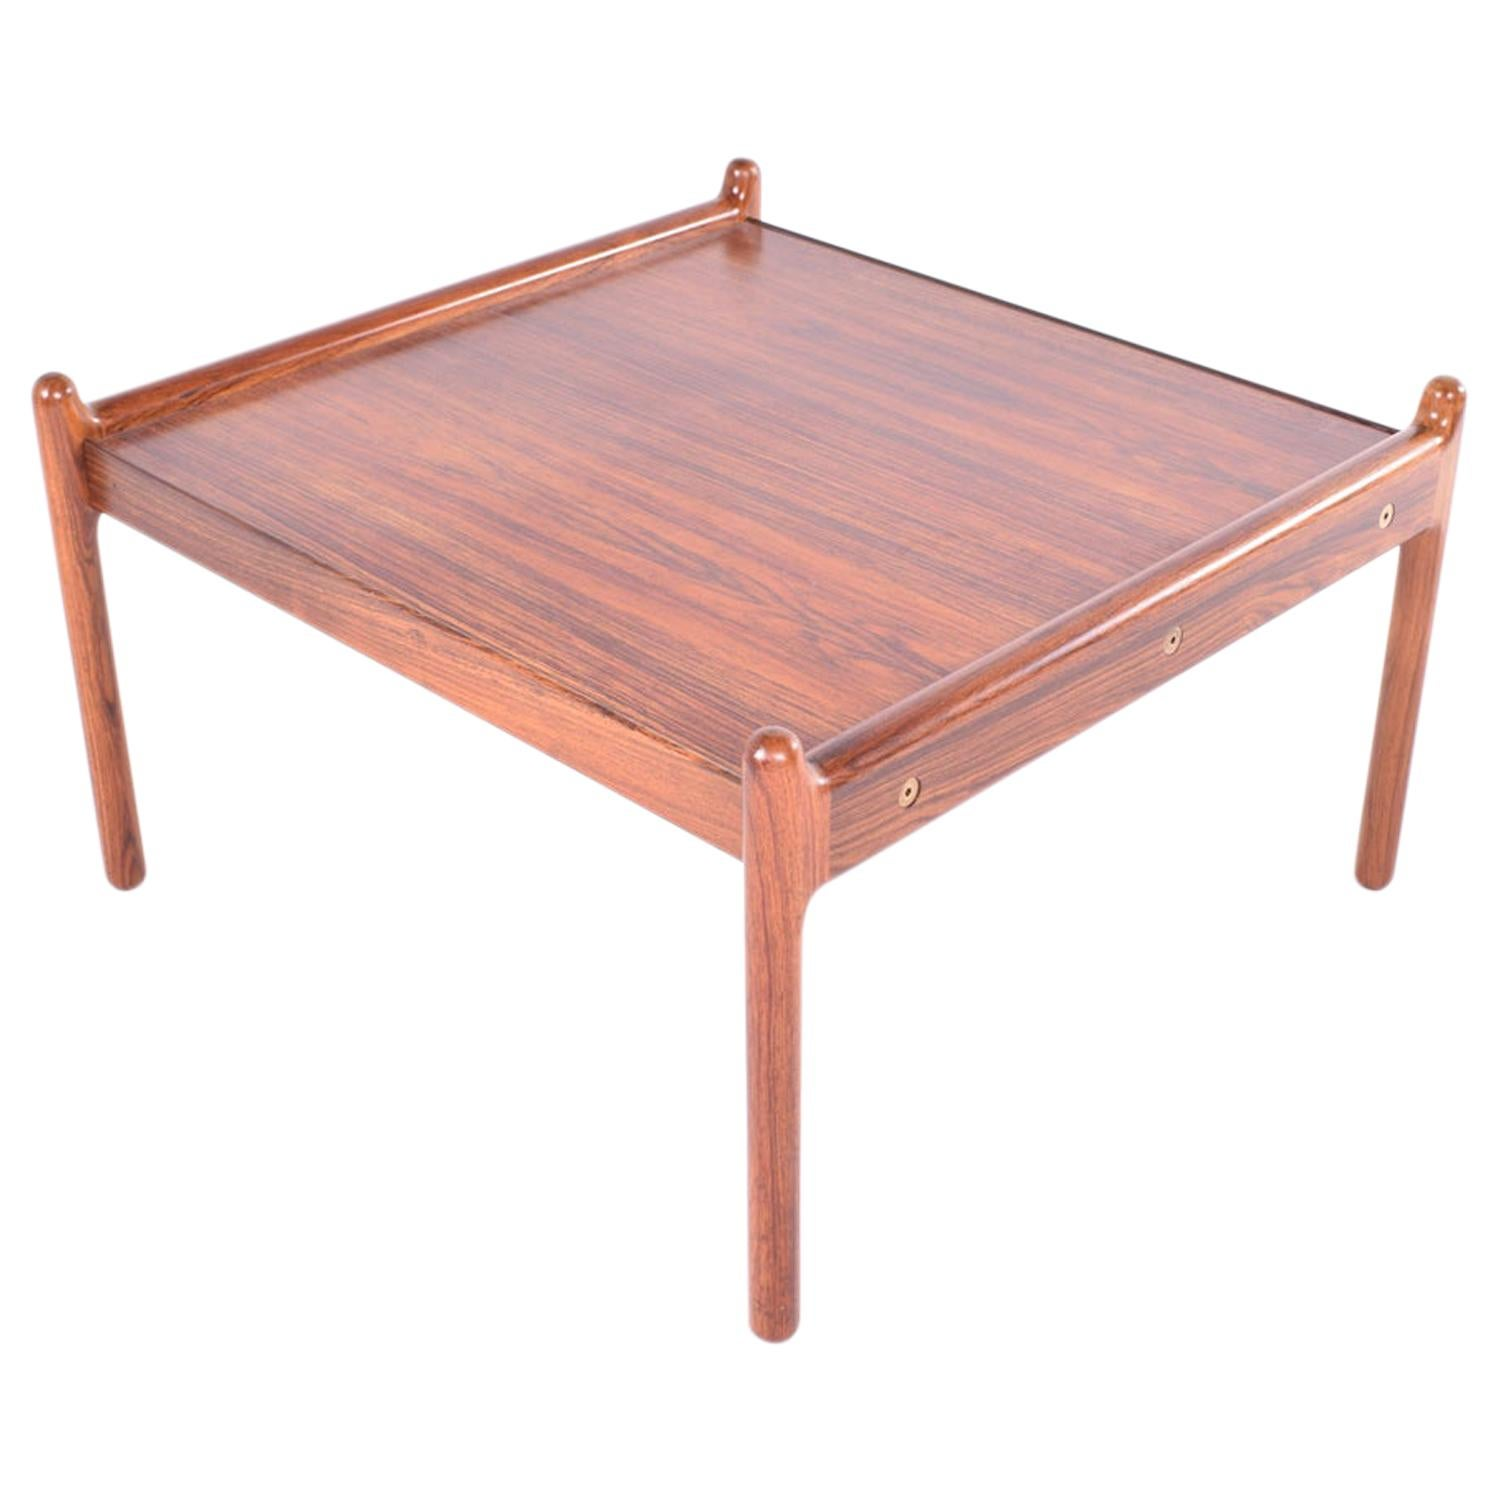 Midcentury Rosewood Coffee Table by Illum Wikkelsø for CFC Silkebørg